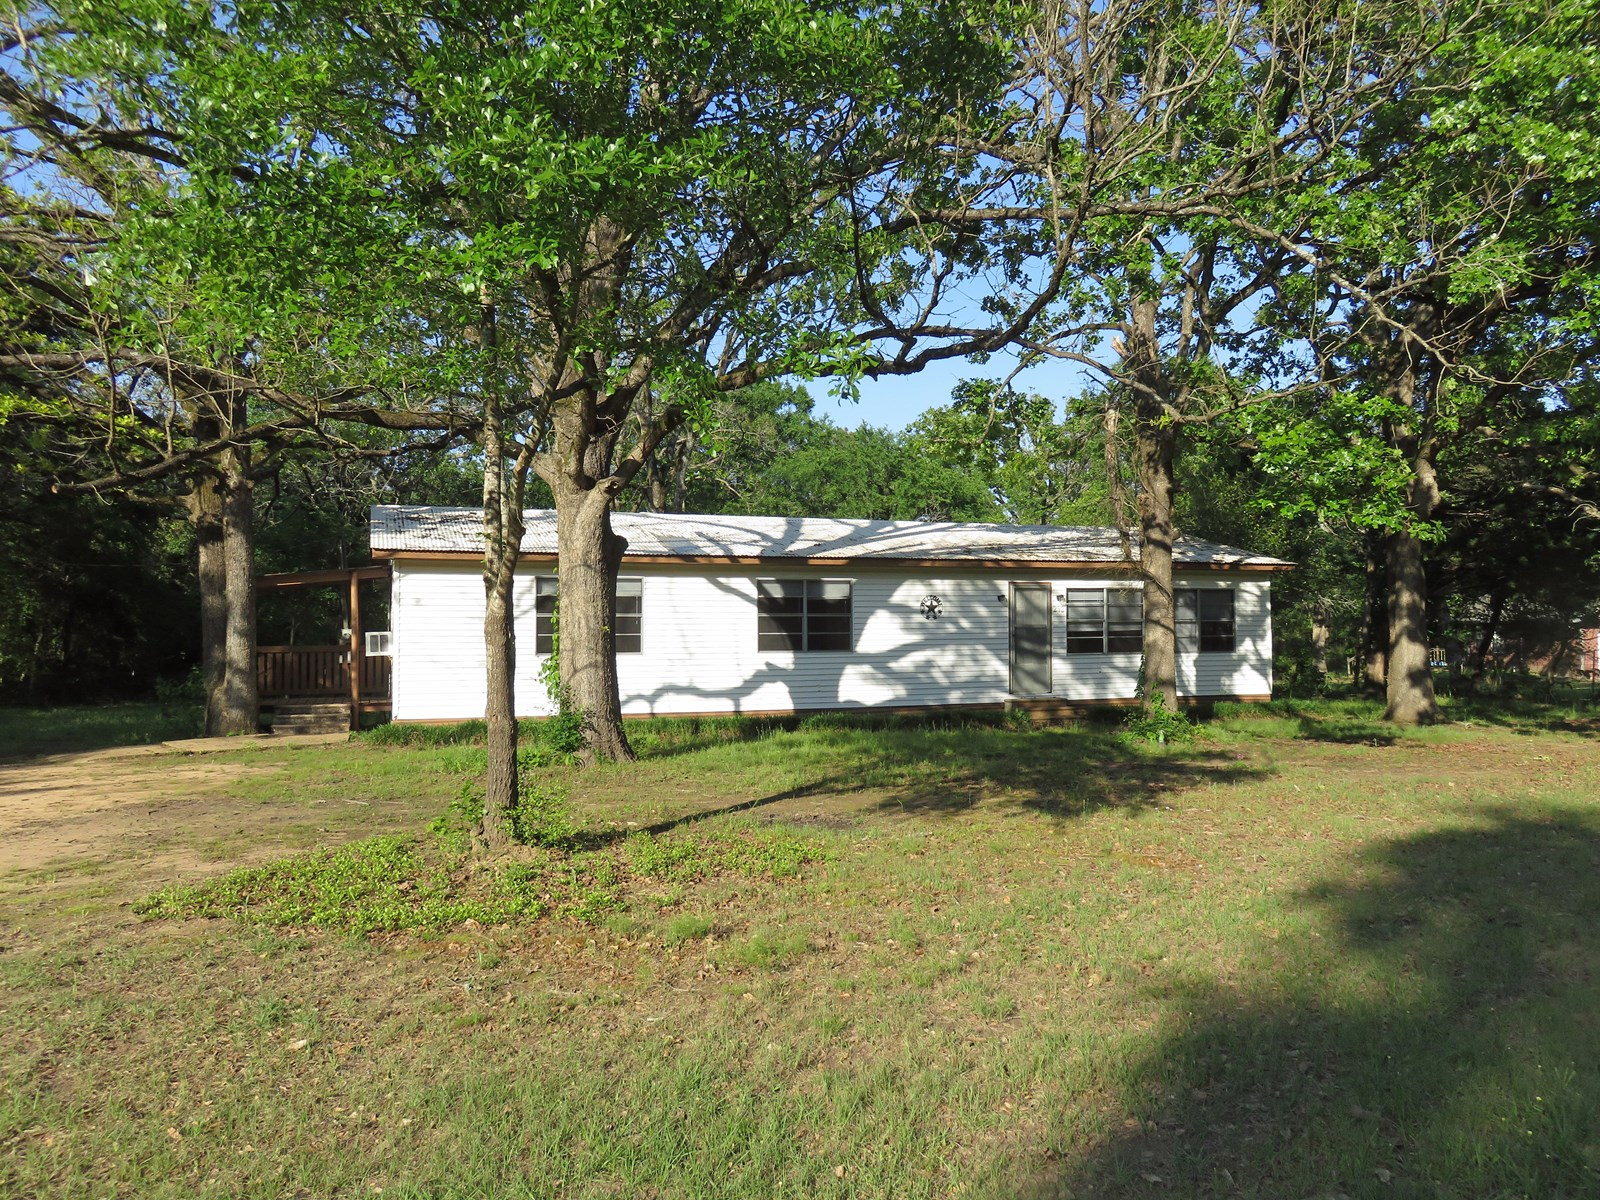 3/1 HOME FOR SALE IN ANDERSON COUNTY